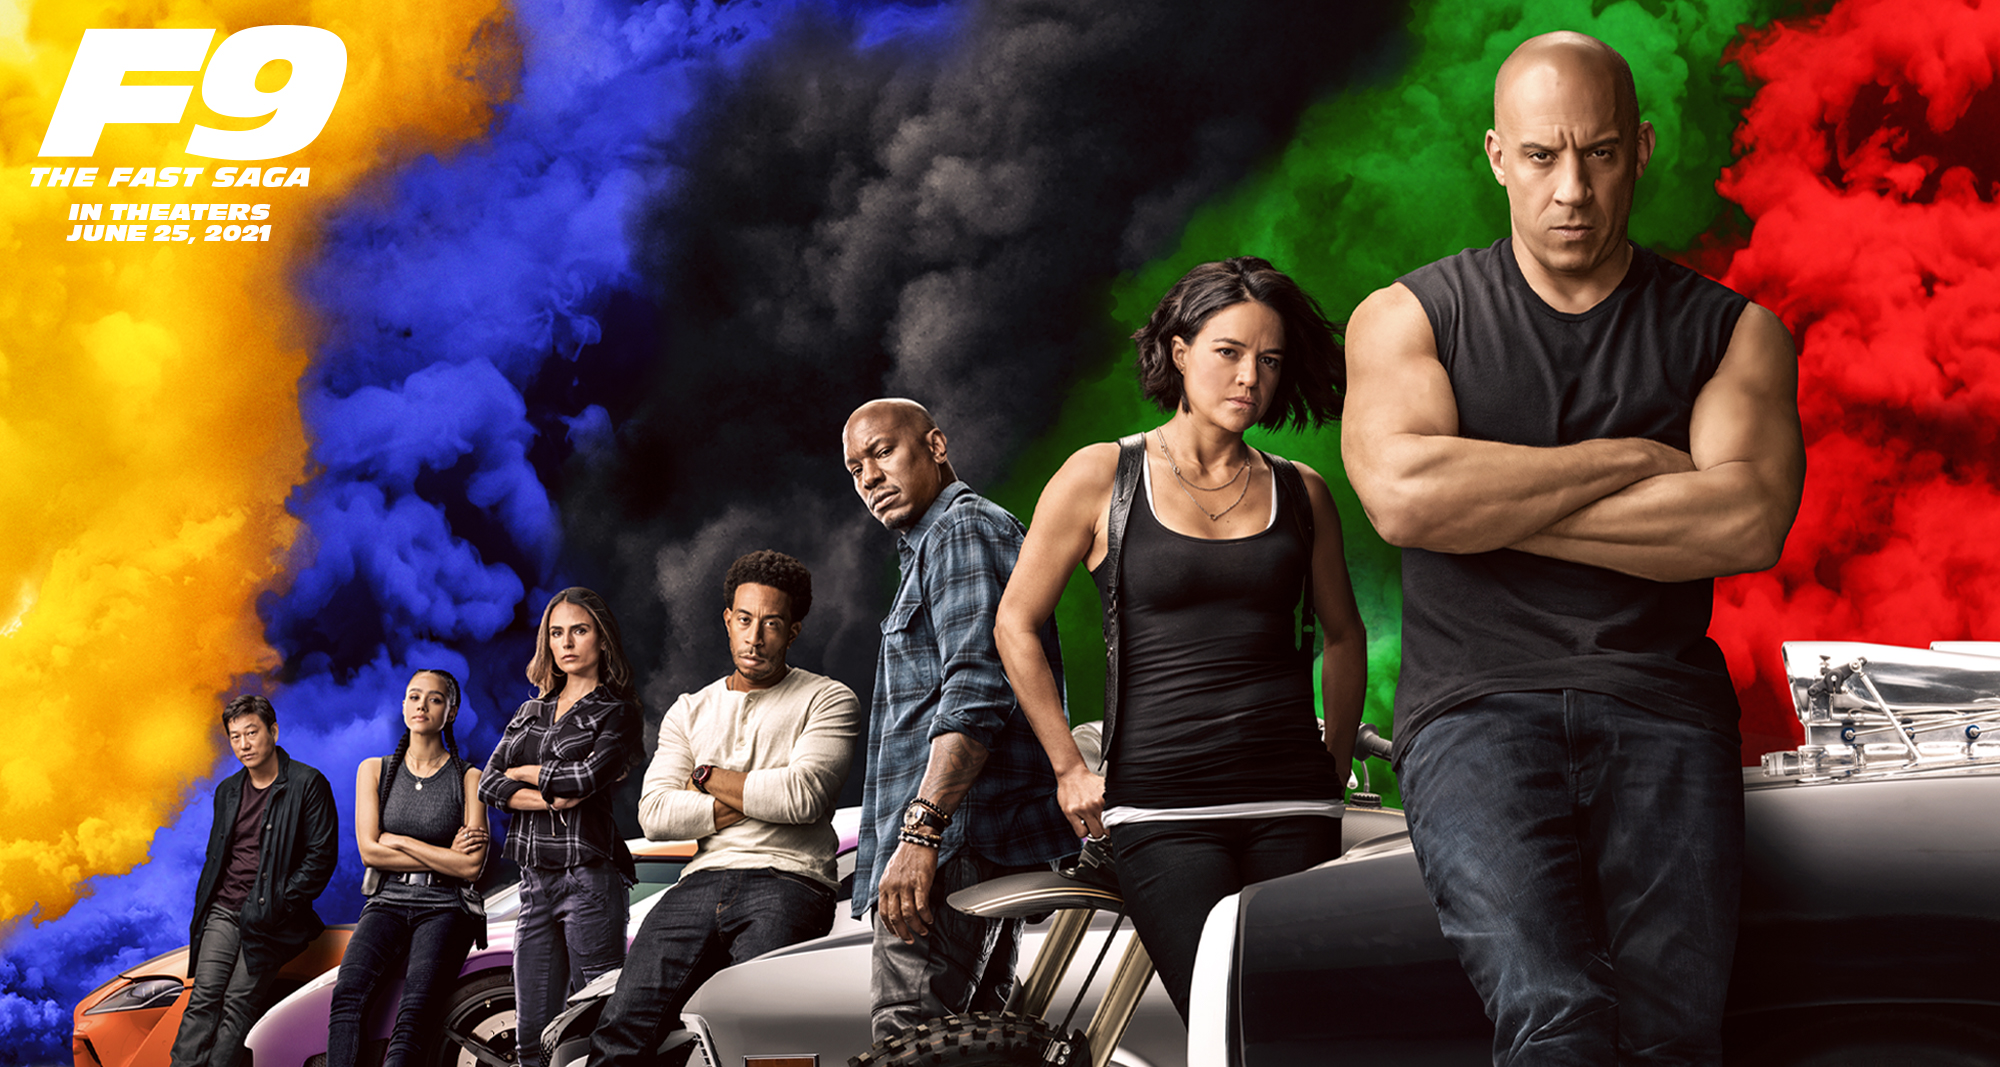 Fast & Furious Presents: Hobbs & Shaw | Official Fast & Furious Movies Site